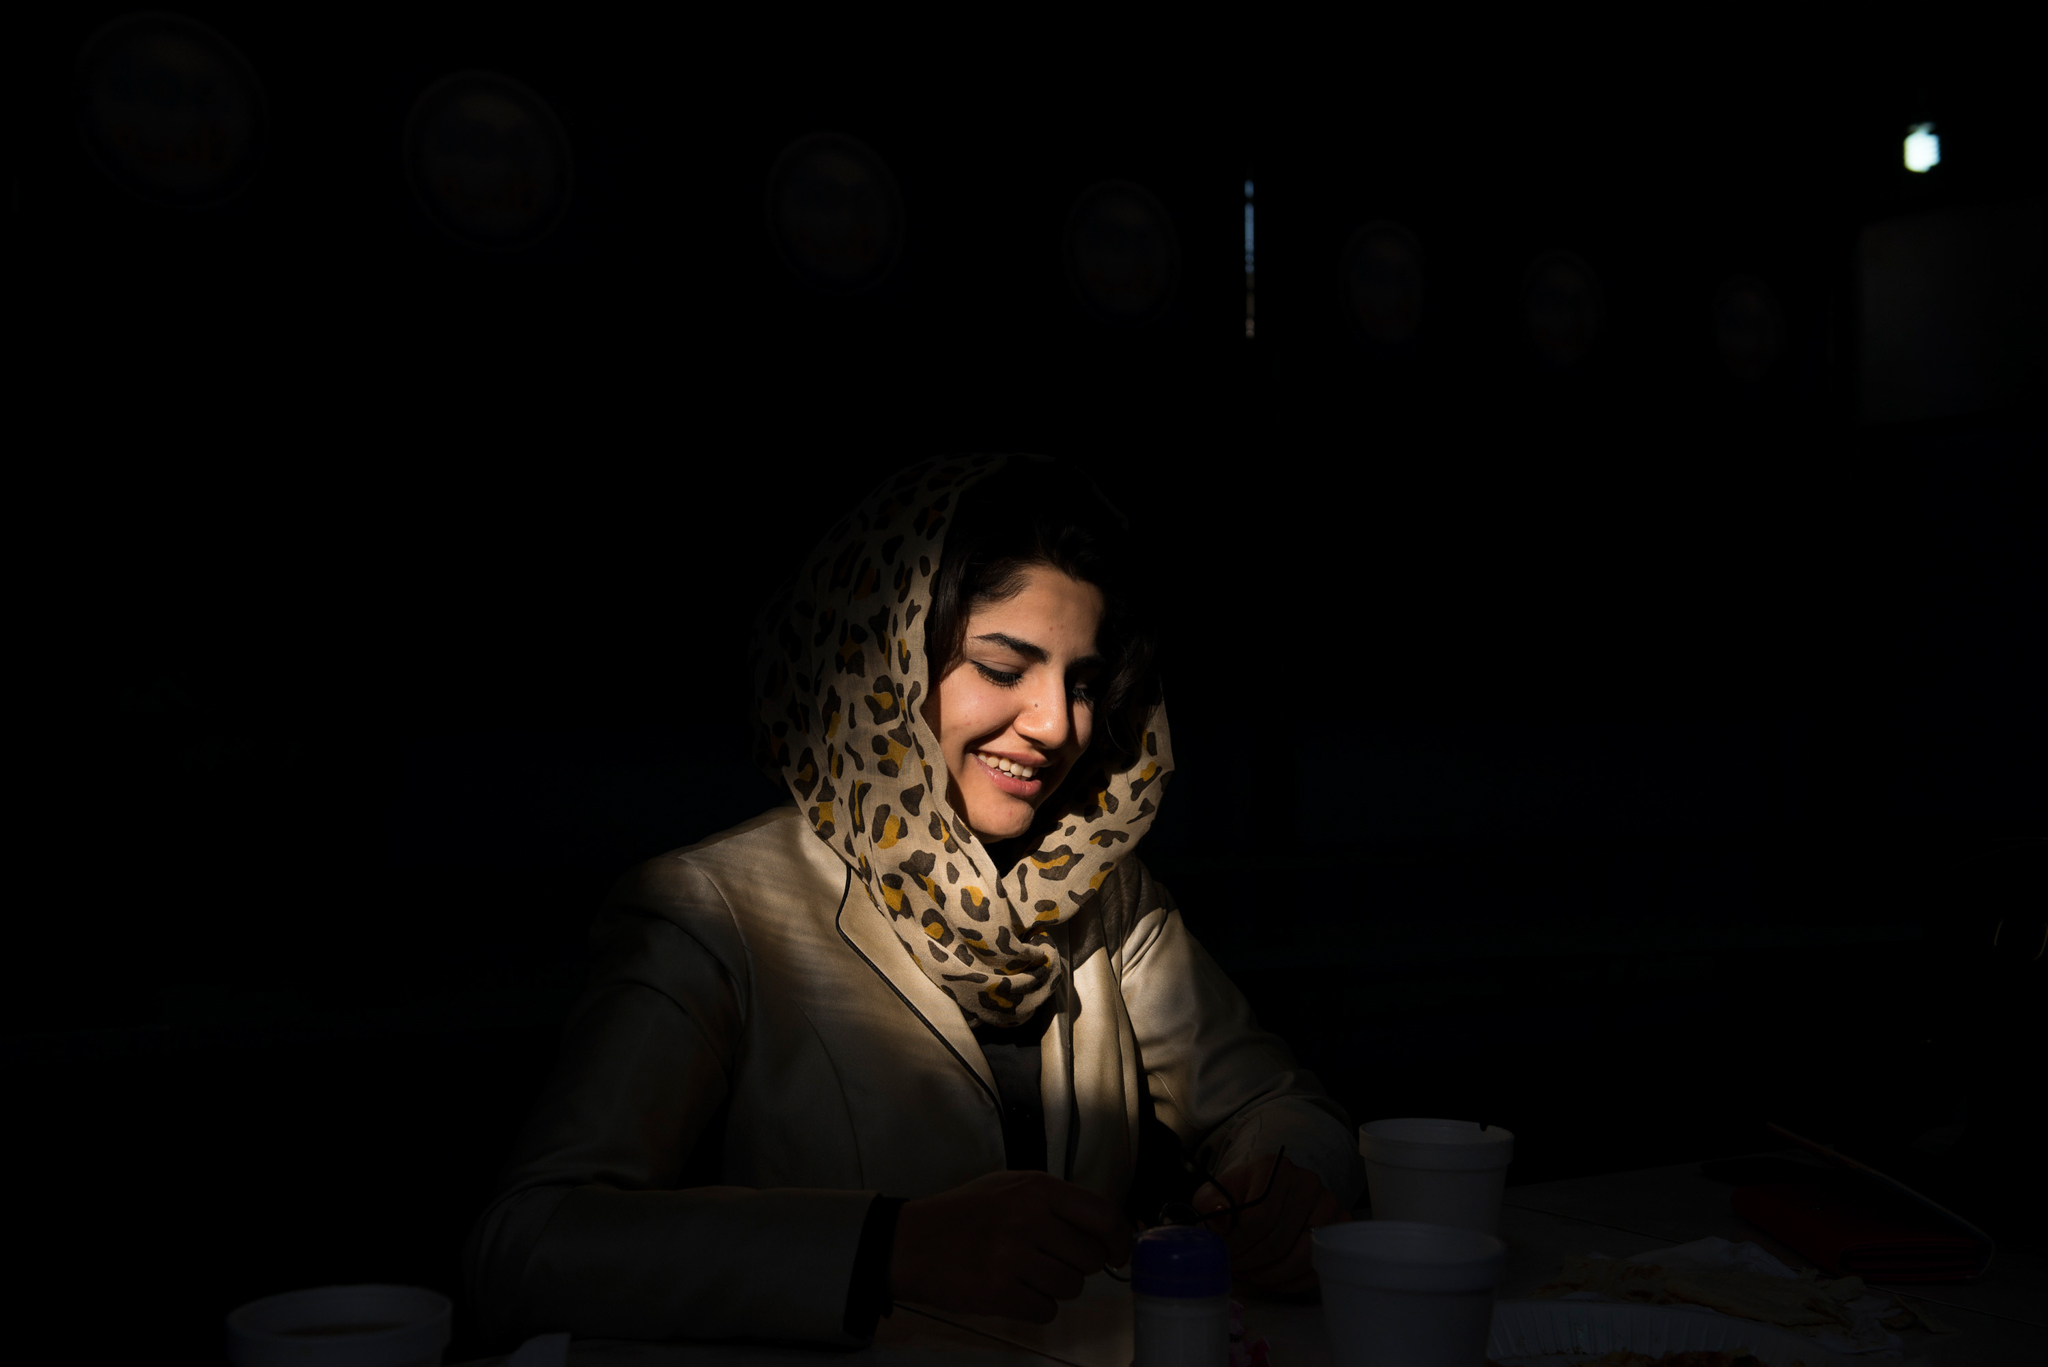 Photographed in 2015, Maryam Sama, a news host for Tolo TV, sips her tea after her morning show. Tolo TV, which is one of the only TV stations in Afghanistan to have female anchors, was targeted by a Taliban suicide attack in January 2016. Seven members of the TV staff were killed. Sama still lives in Kabul, and is also a part-time student at the American University of Afghanistan, where at least thirteen people were killed in an attack in August 2016. Sama lost several friends.